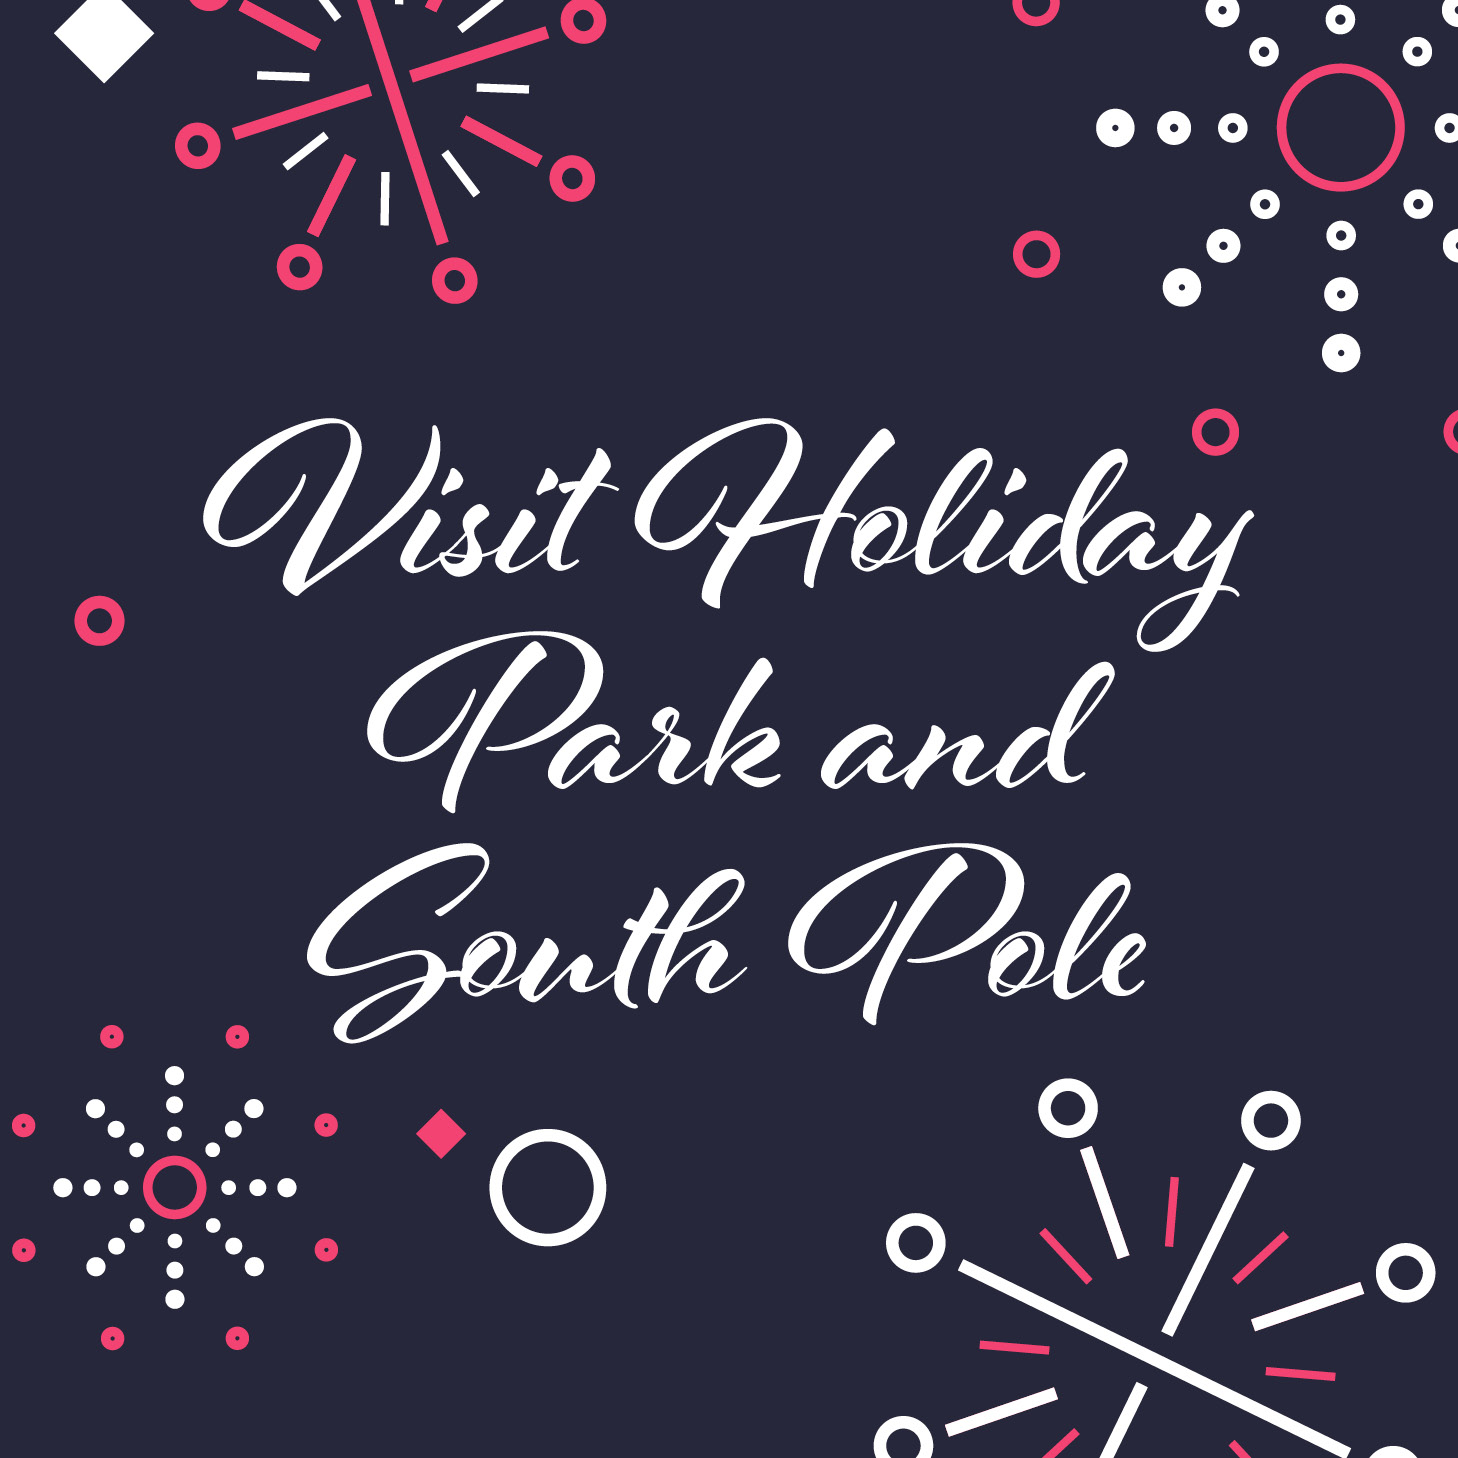 Visit Holiday Parks